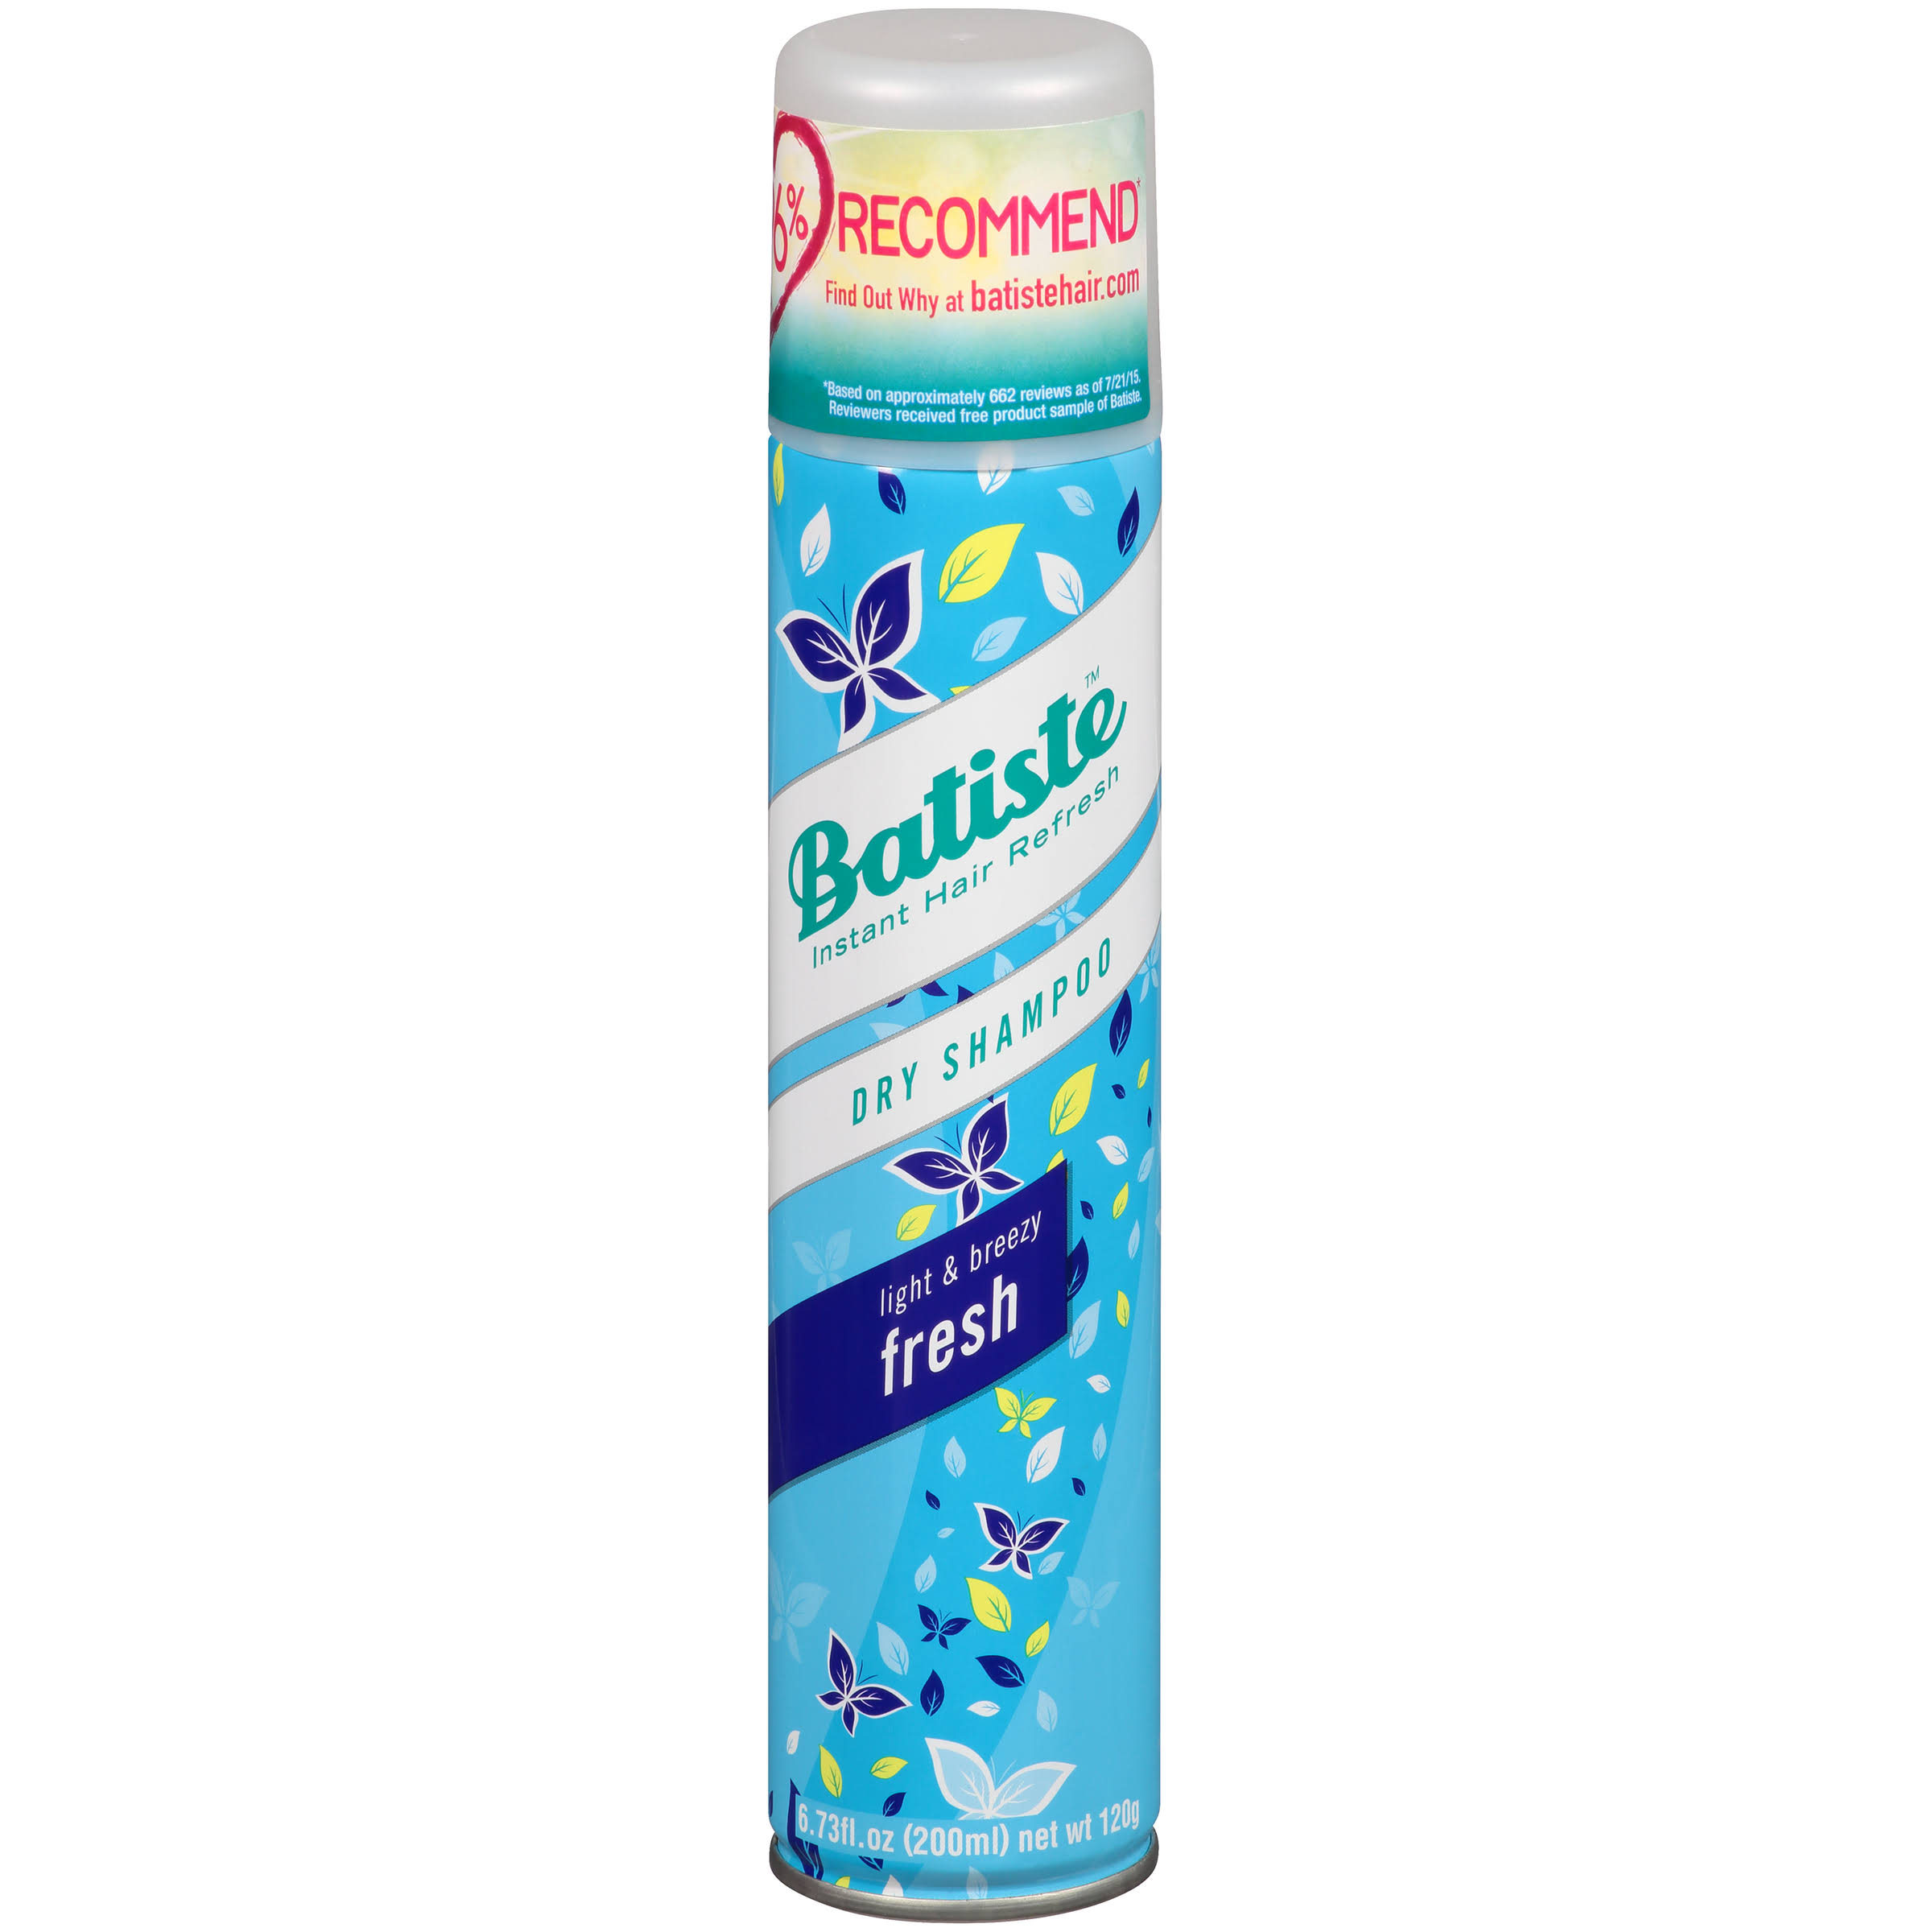 Batiste Dry Shampoo - Light & Breezy Fresh, 200ml